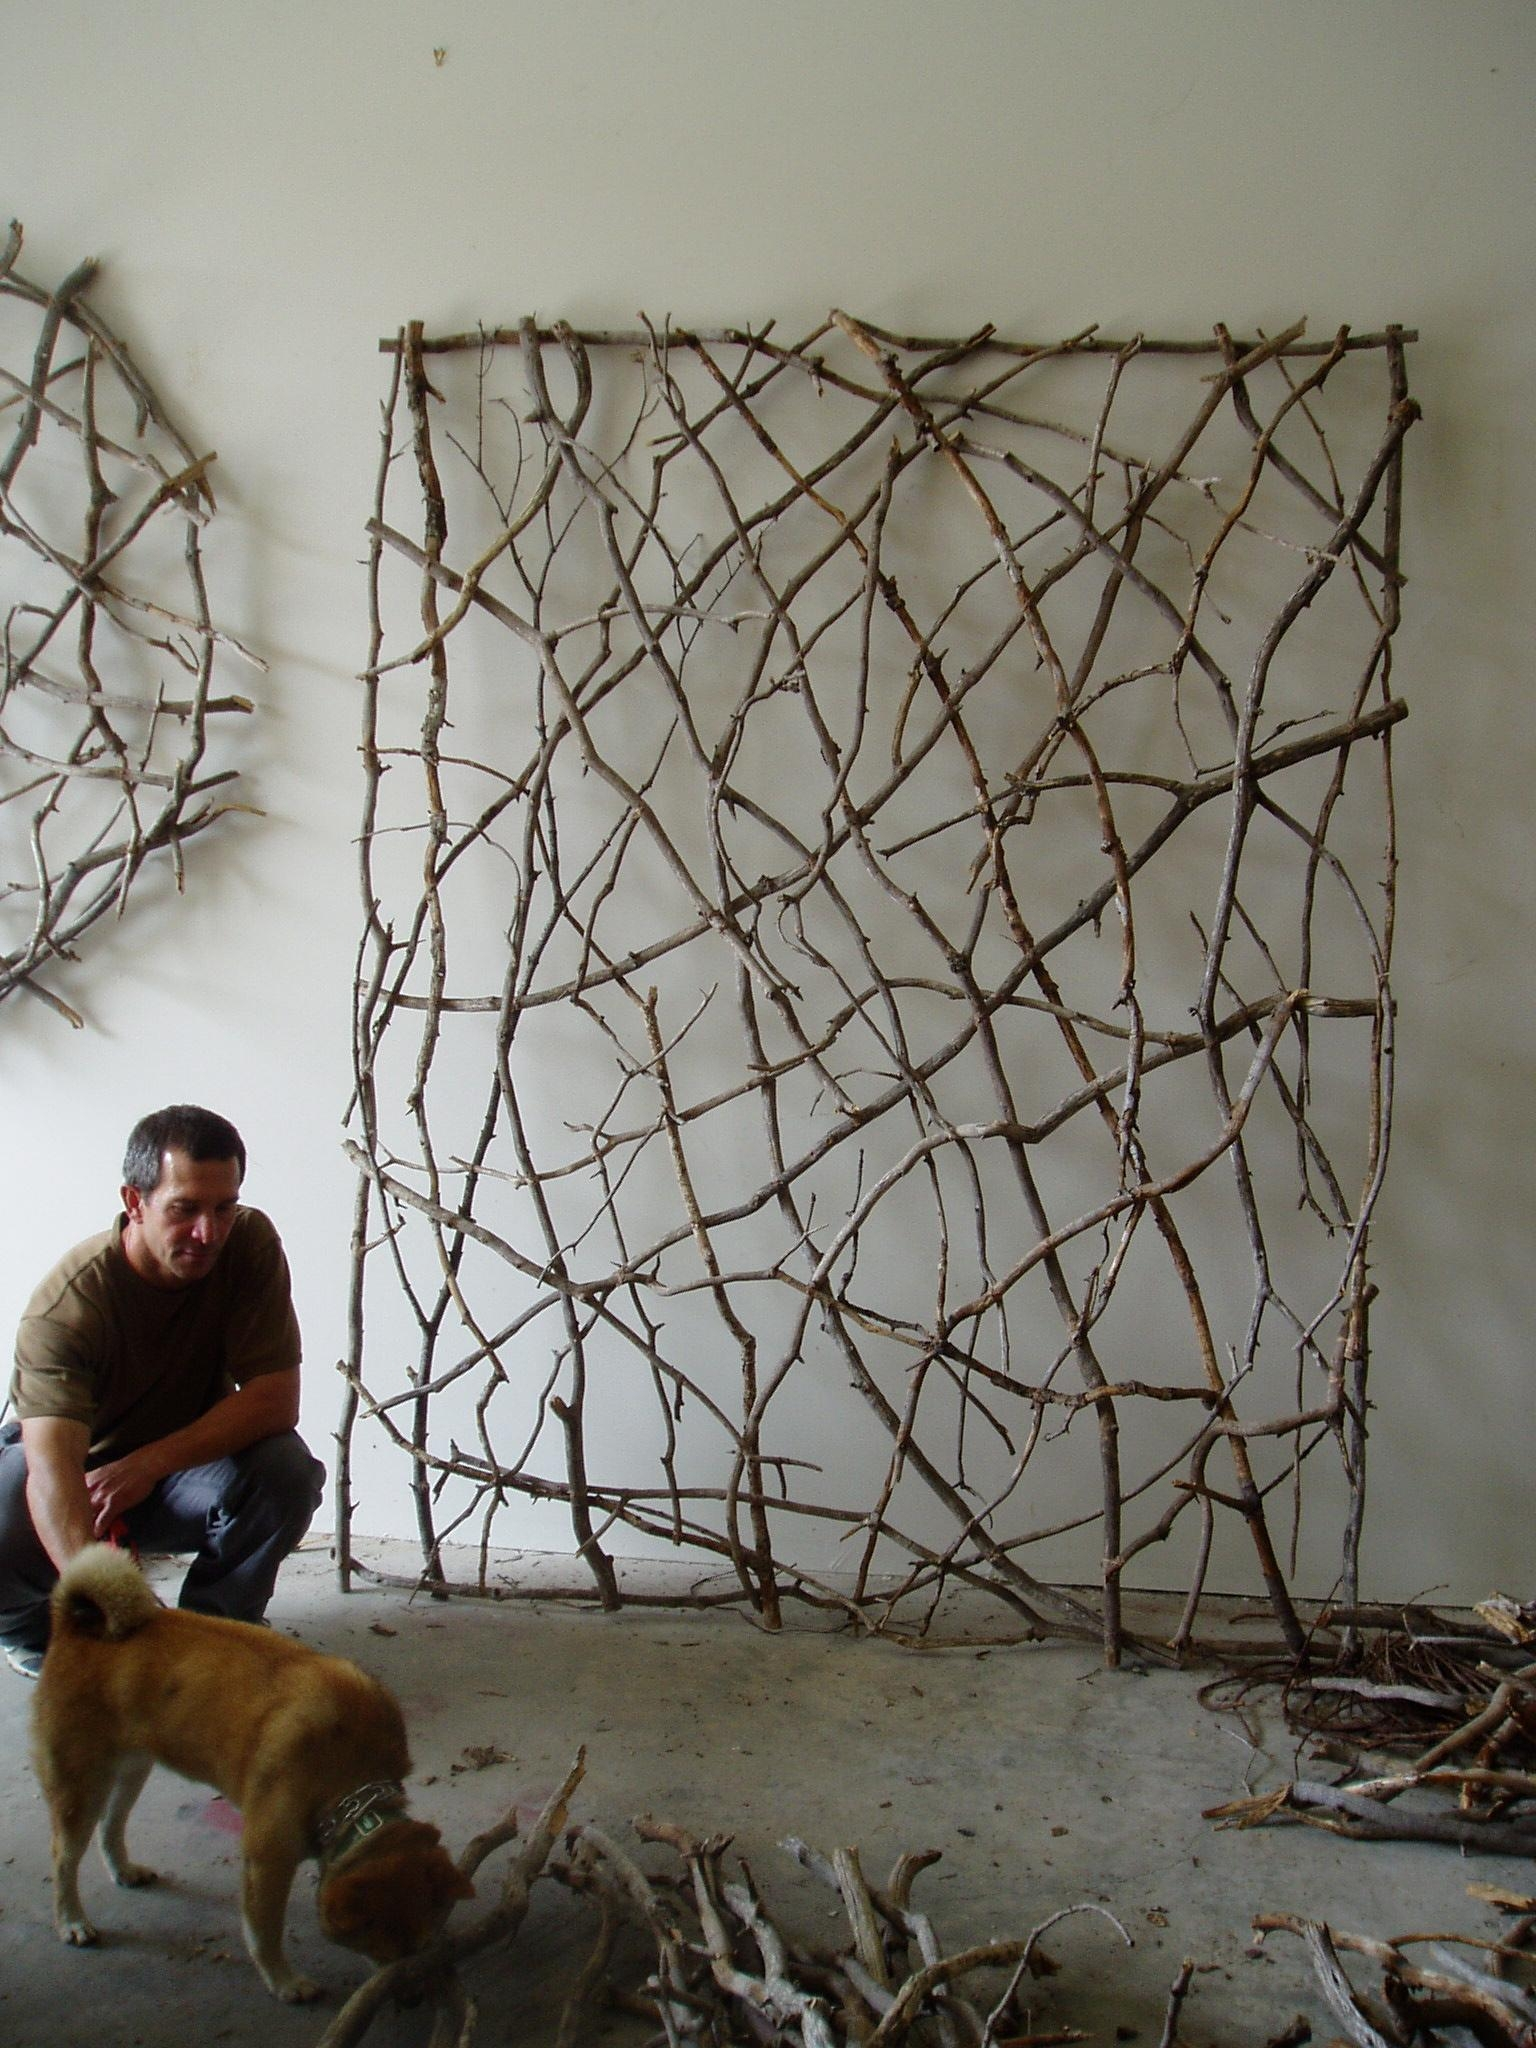 About Paul Schick | Paul Schick Regarding Natural Wood Wall Art (View 16 of 20)